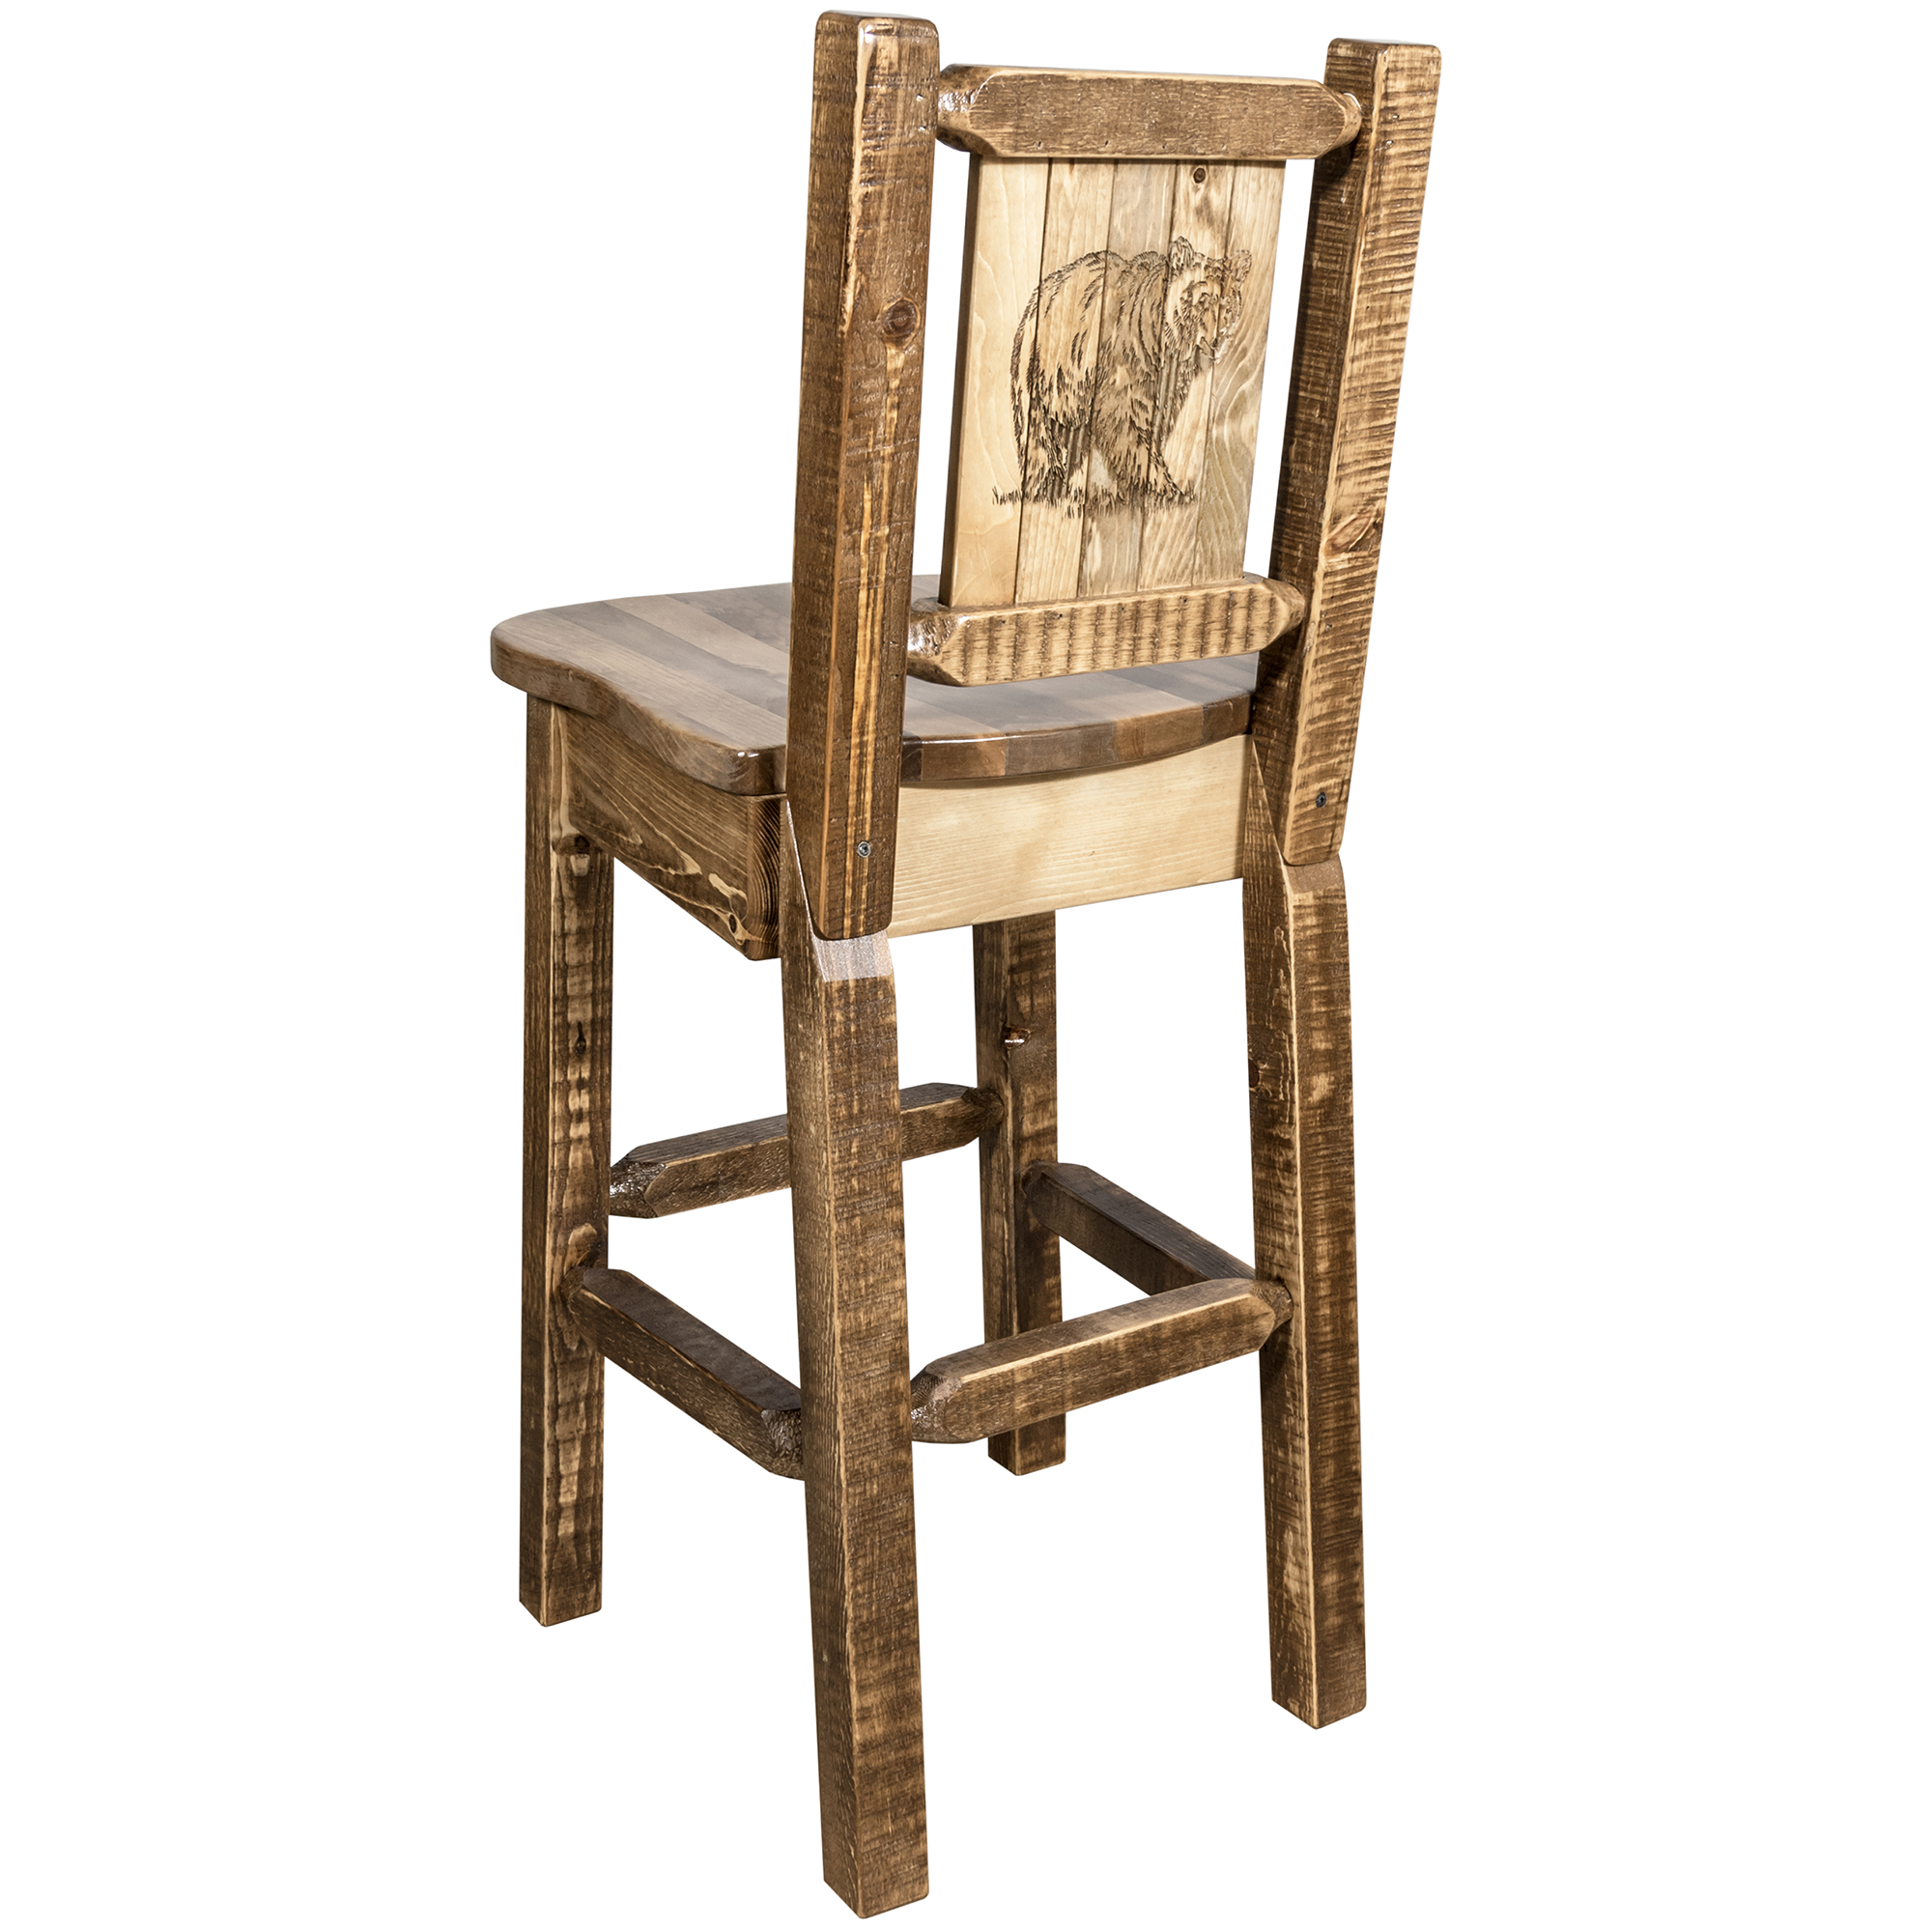 Homestead Collection Barstool w/ Back, Stain & Clear Lacquer Finish, Ergonomic Wooden Seat